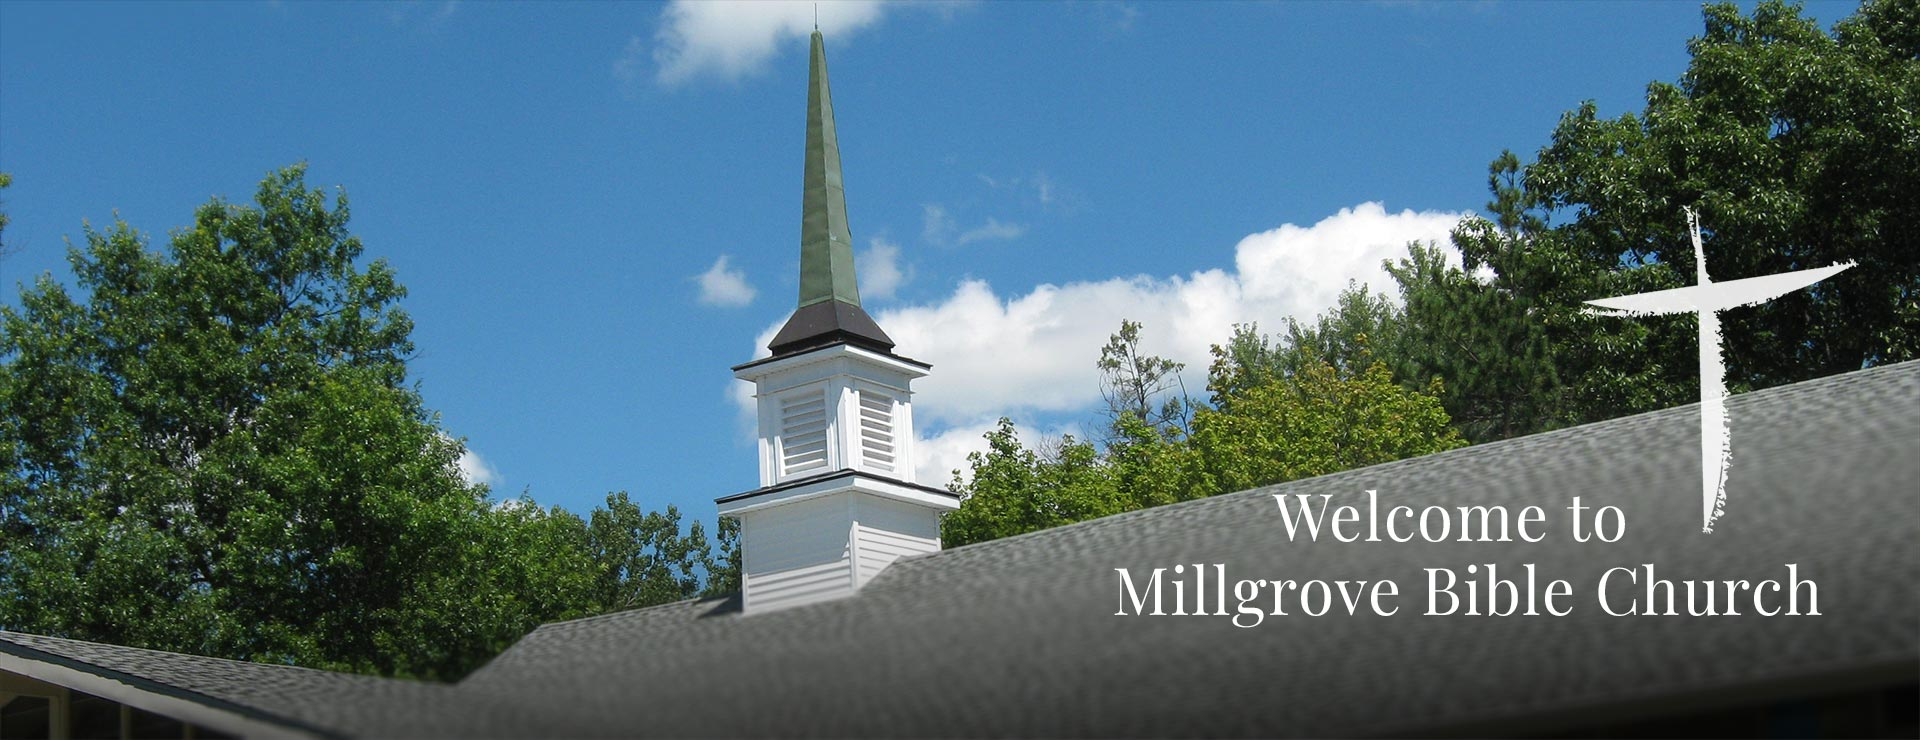 Welcome to Millgrove Bible Church